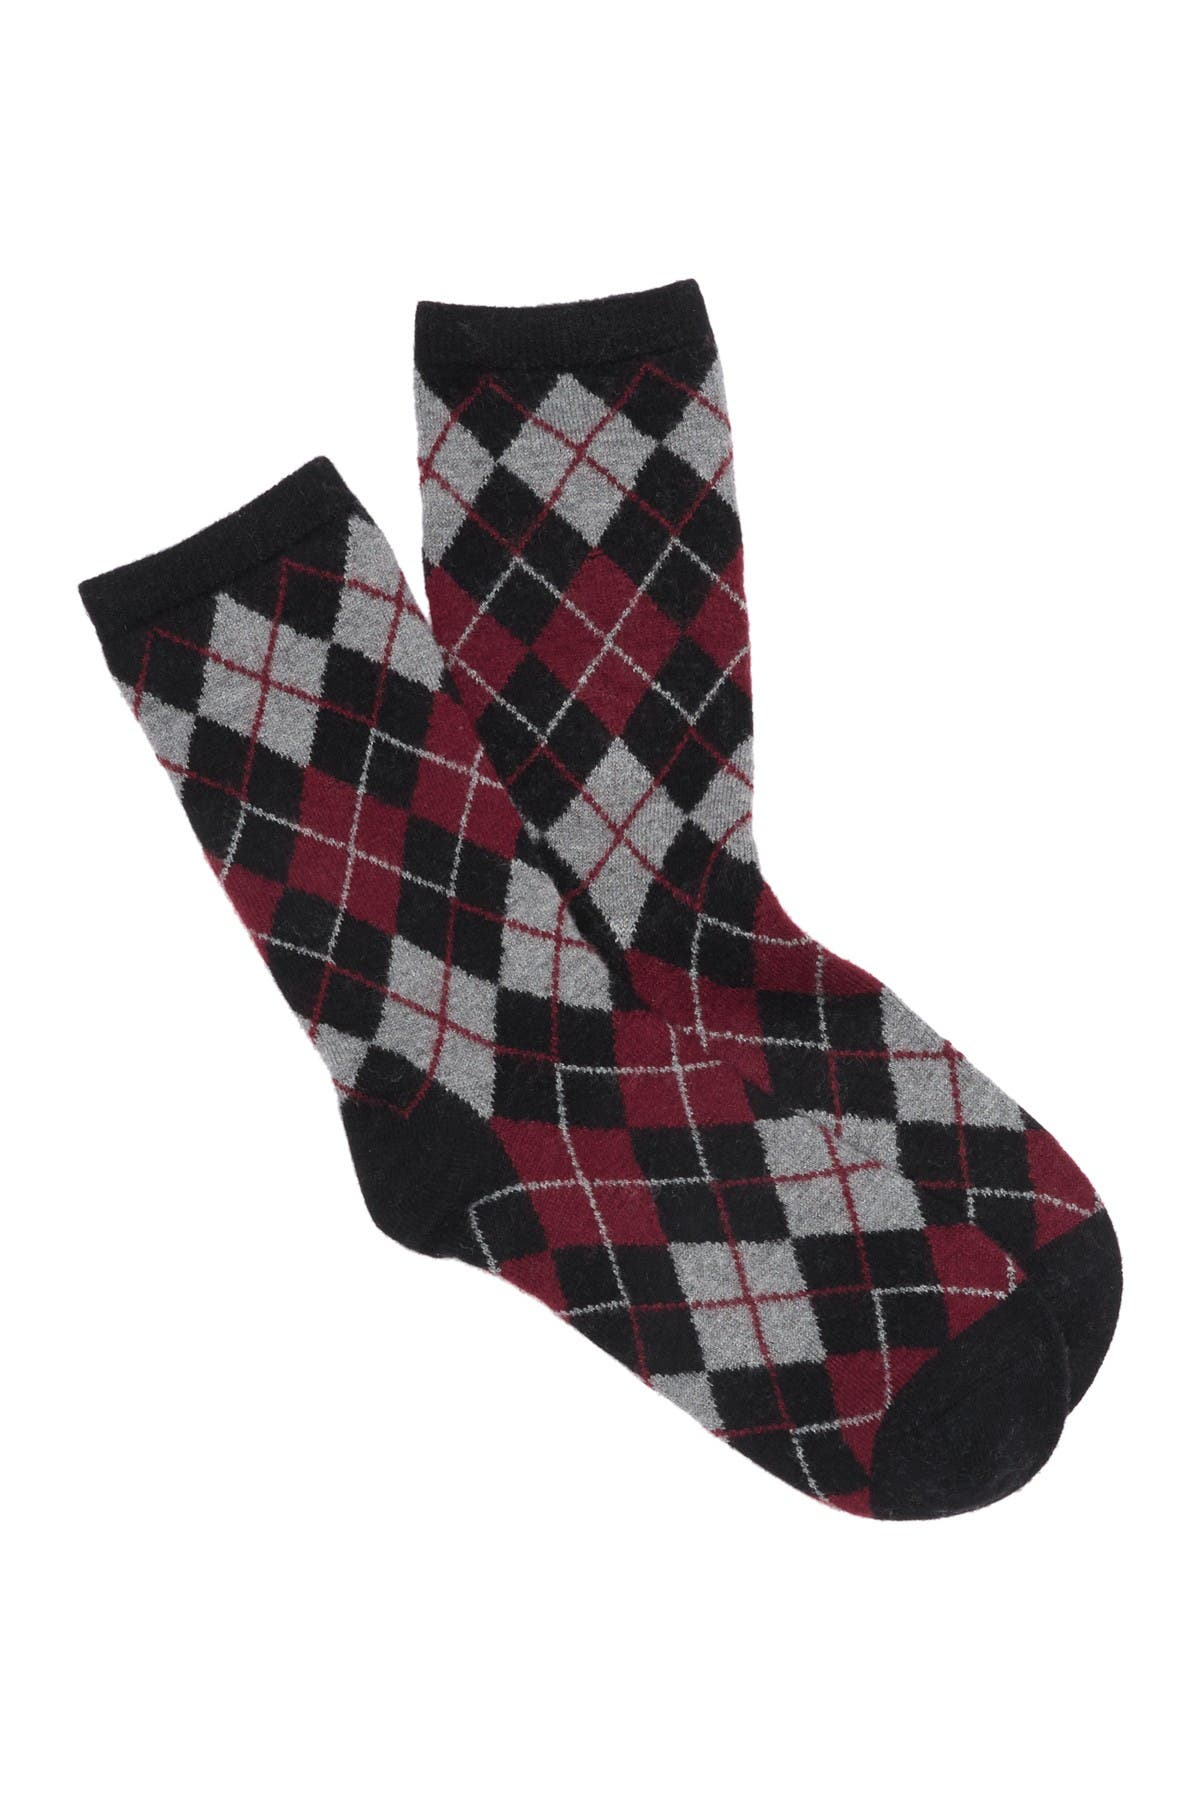 Image of MEMOI Argyle Crew Socks